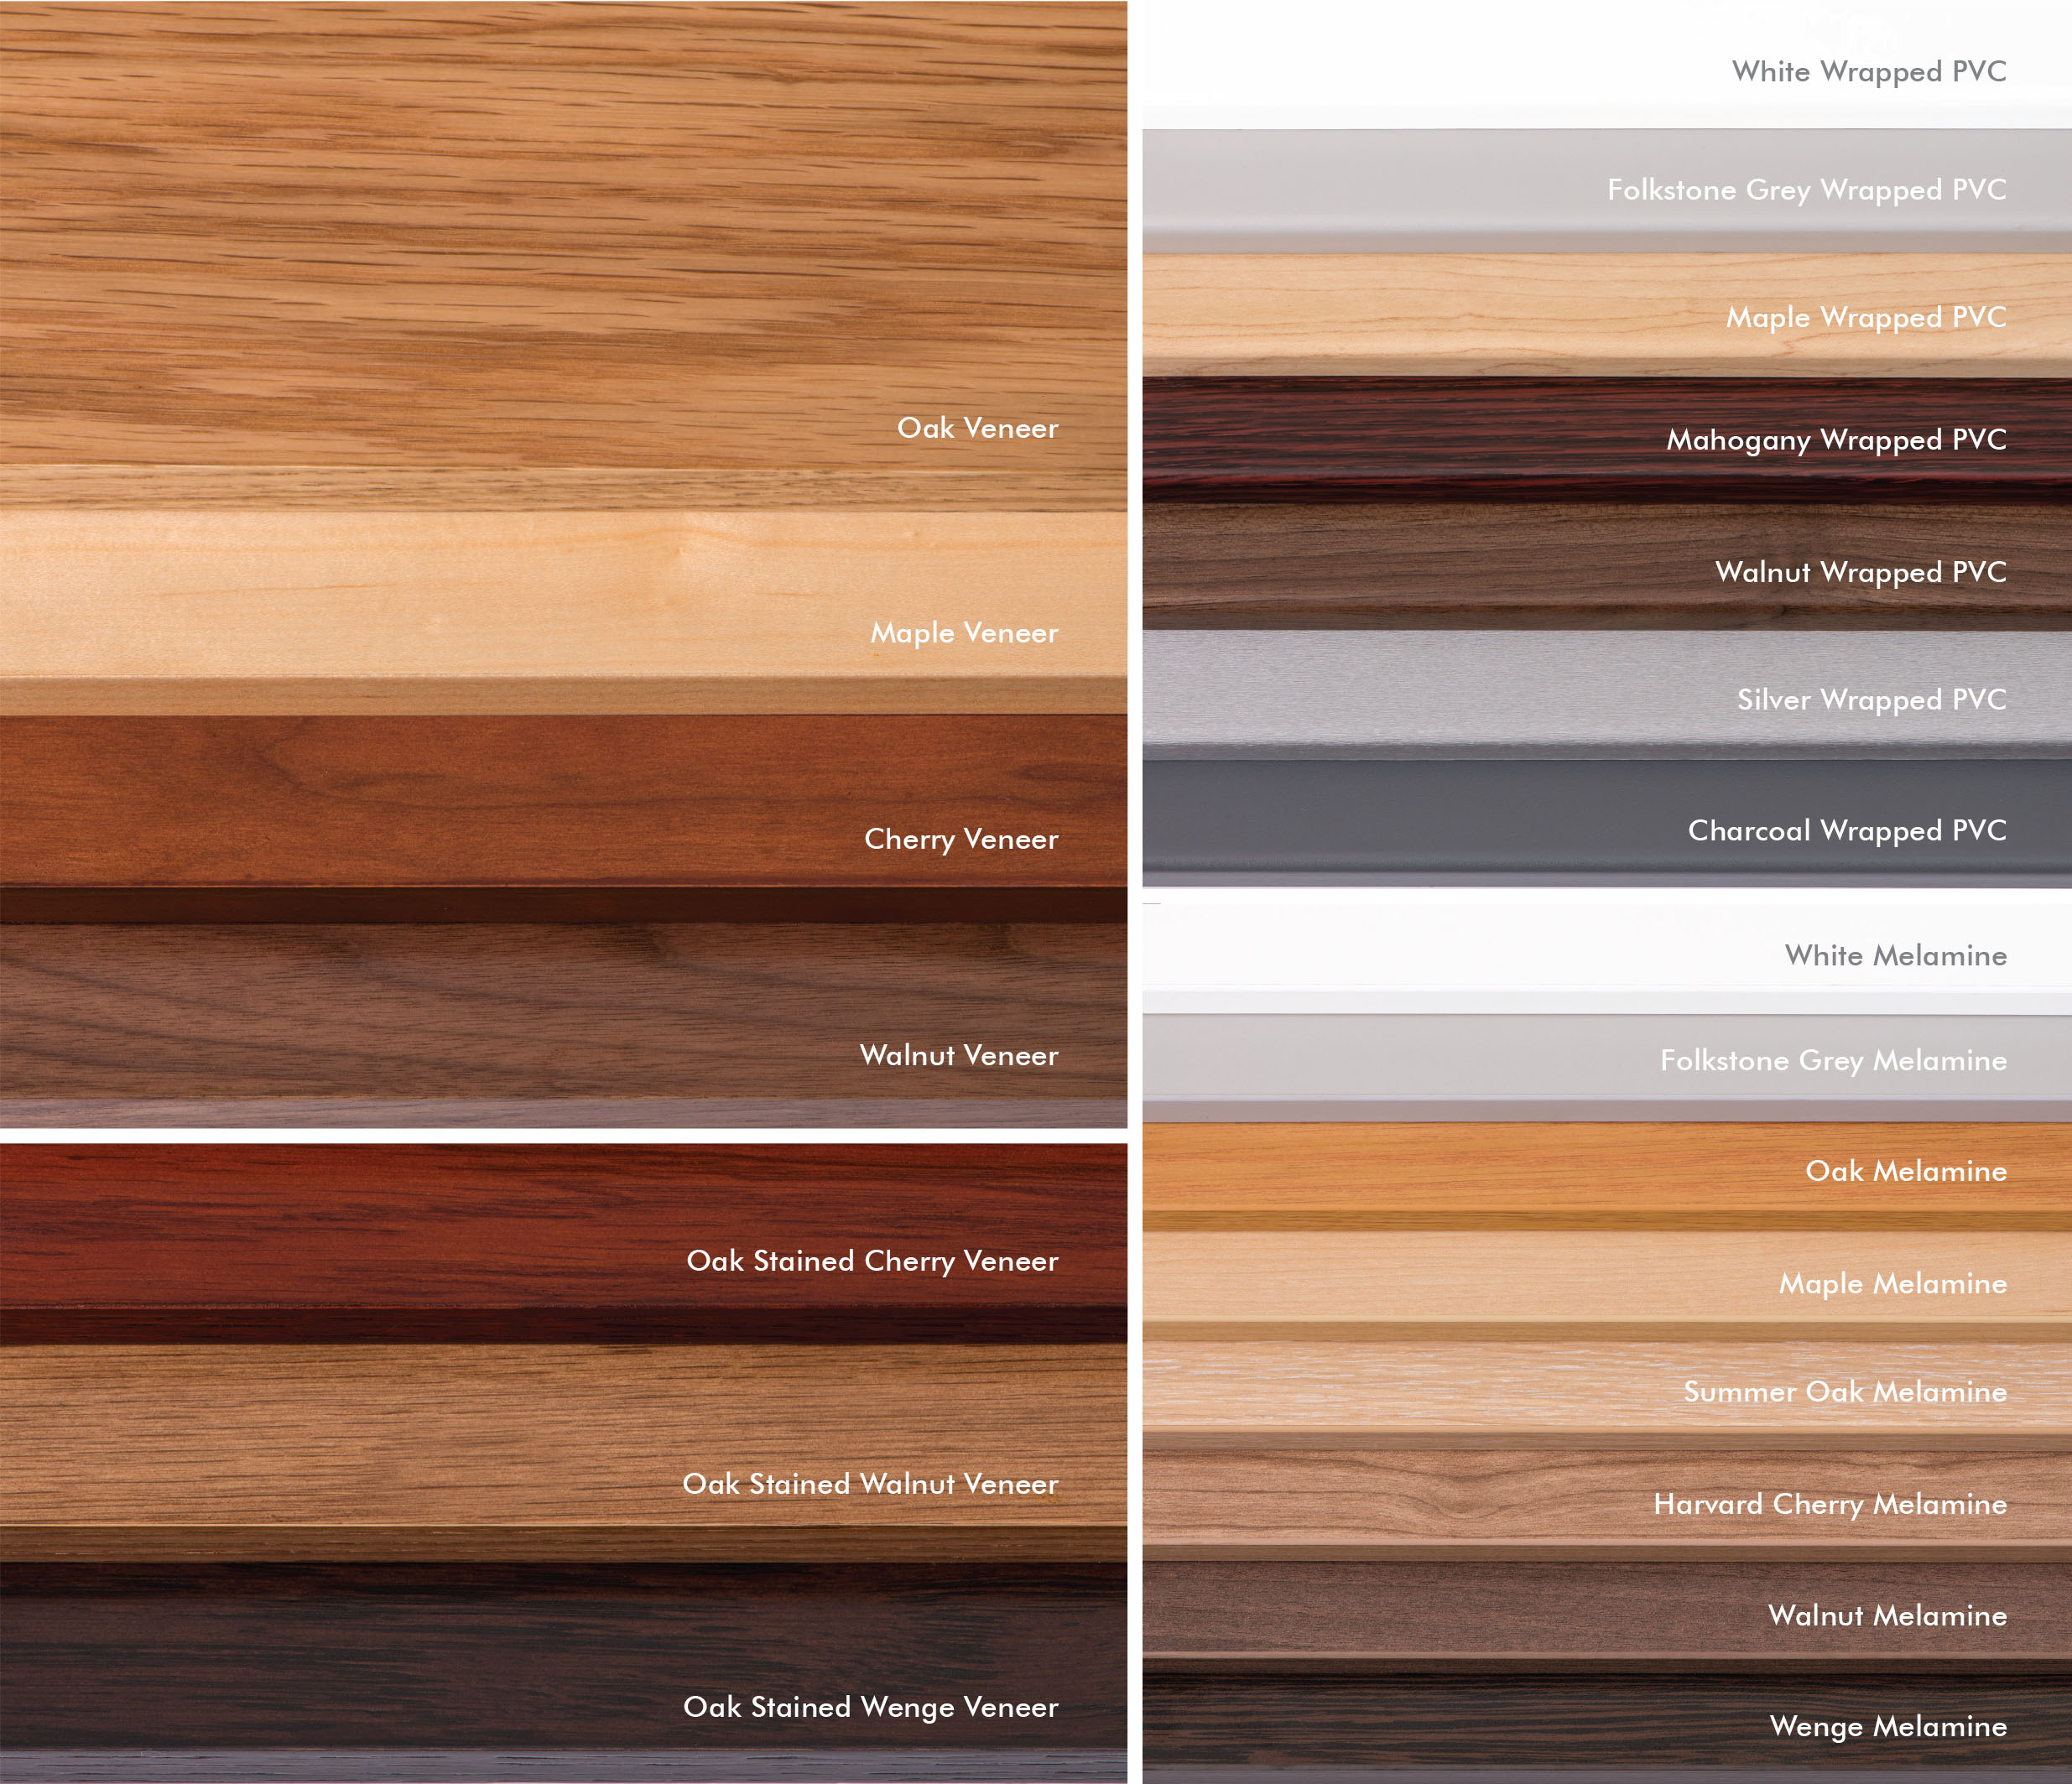 Wood Swatch 1